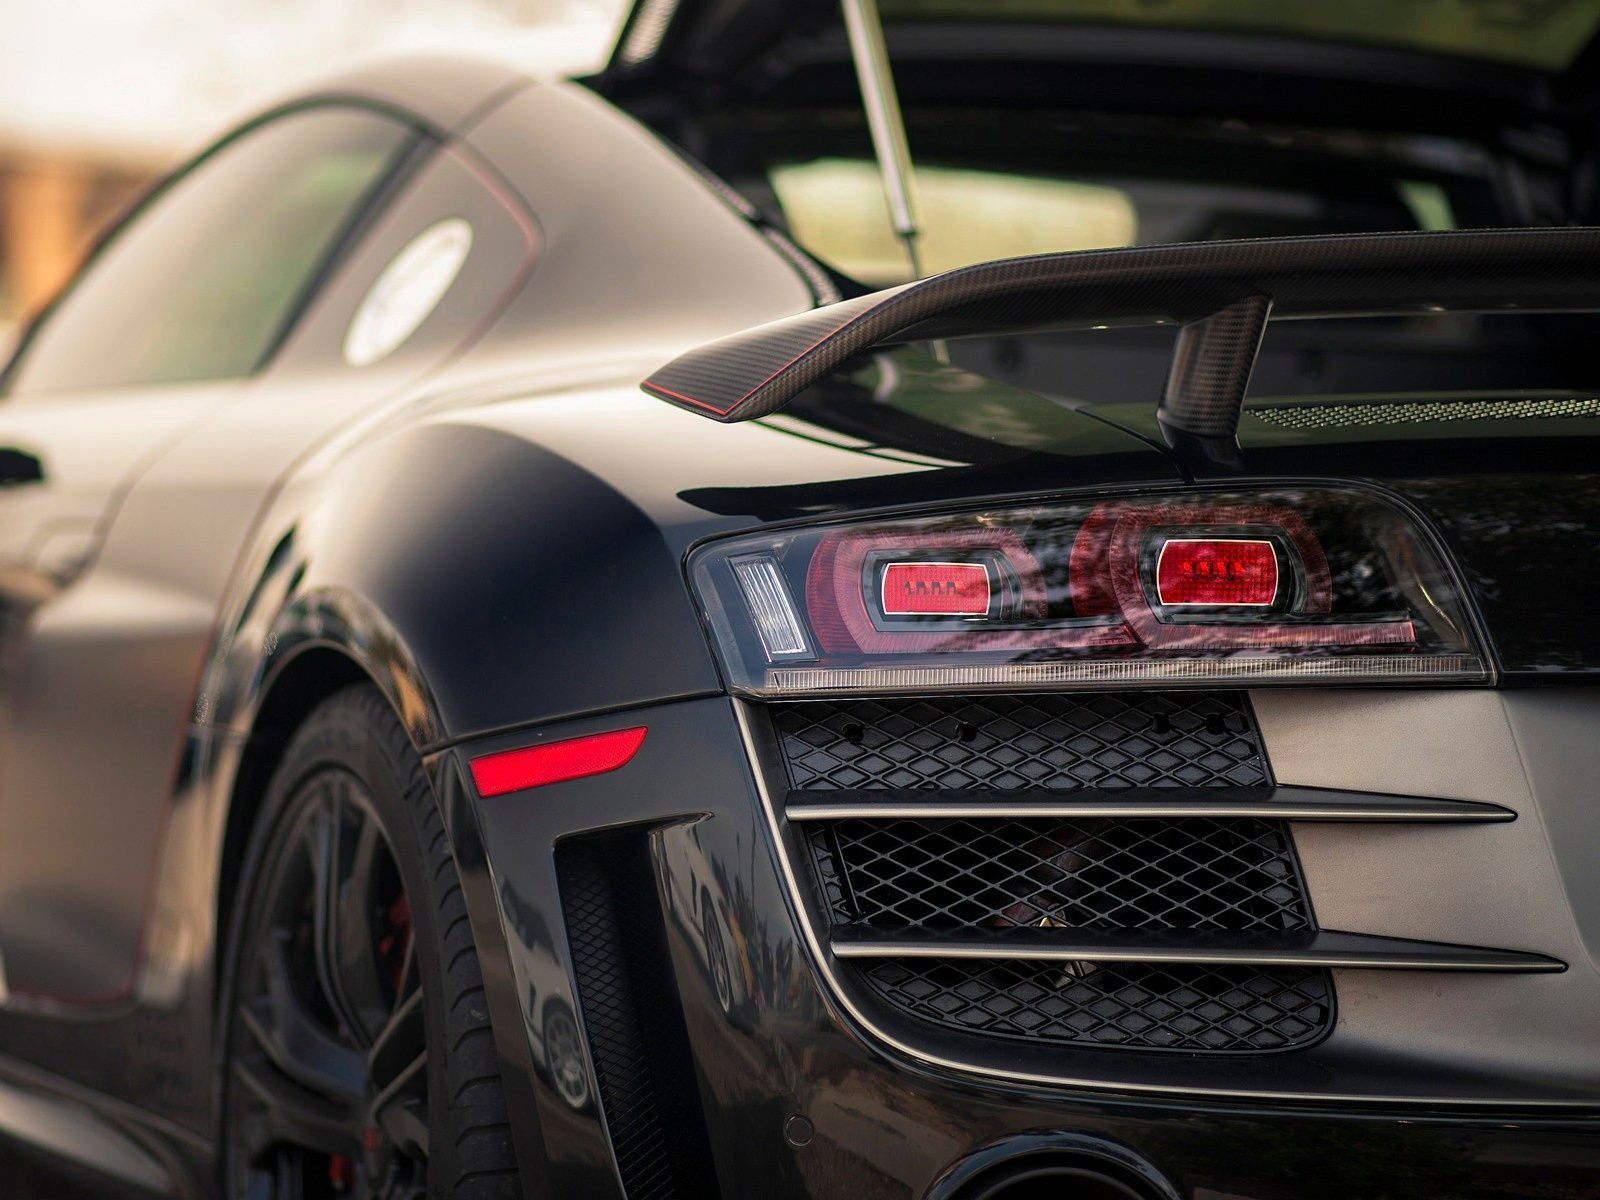 Audi R8 Abt Beautiful Carbon Spoiler With A Subtle Red Accent